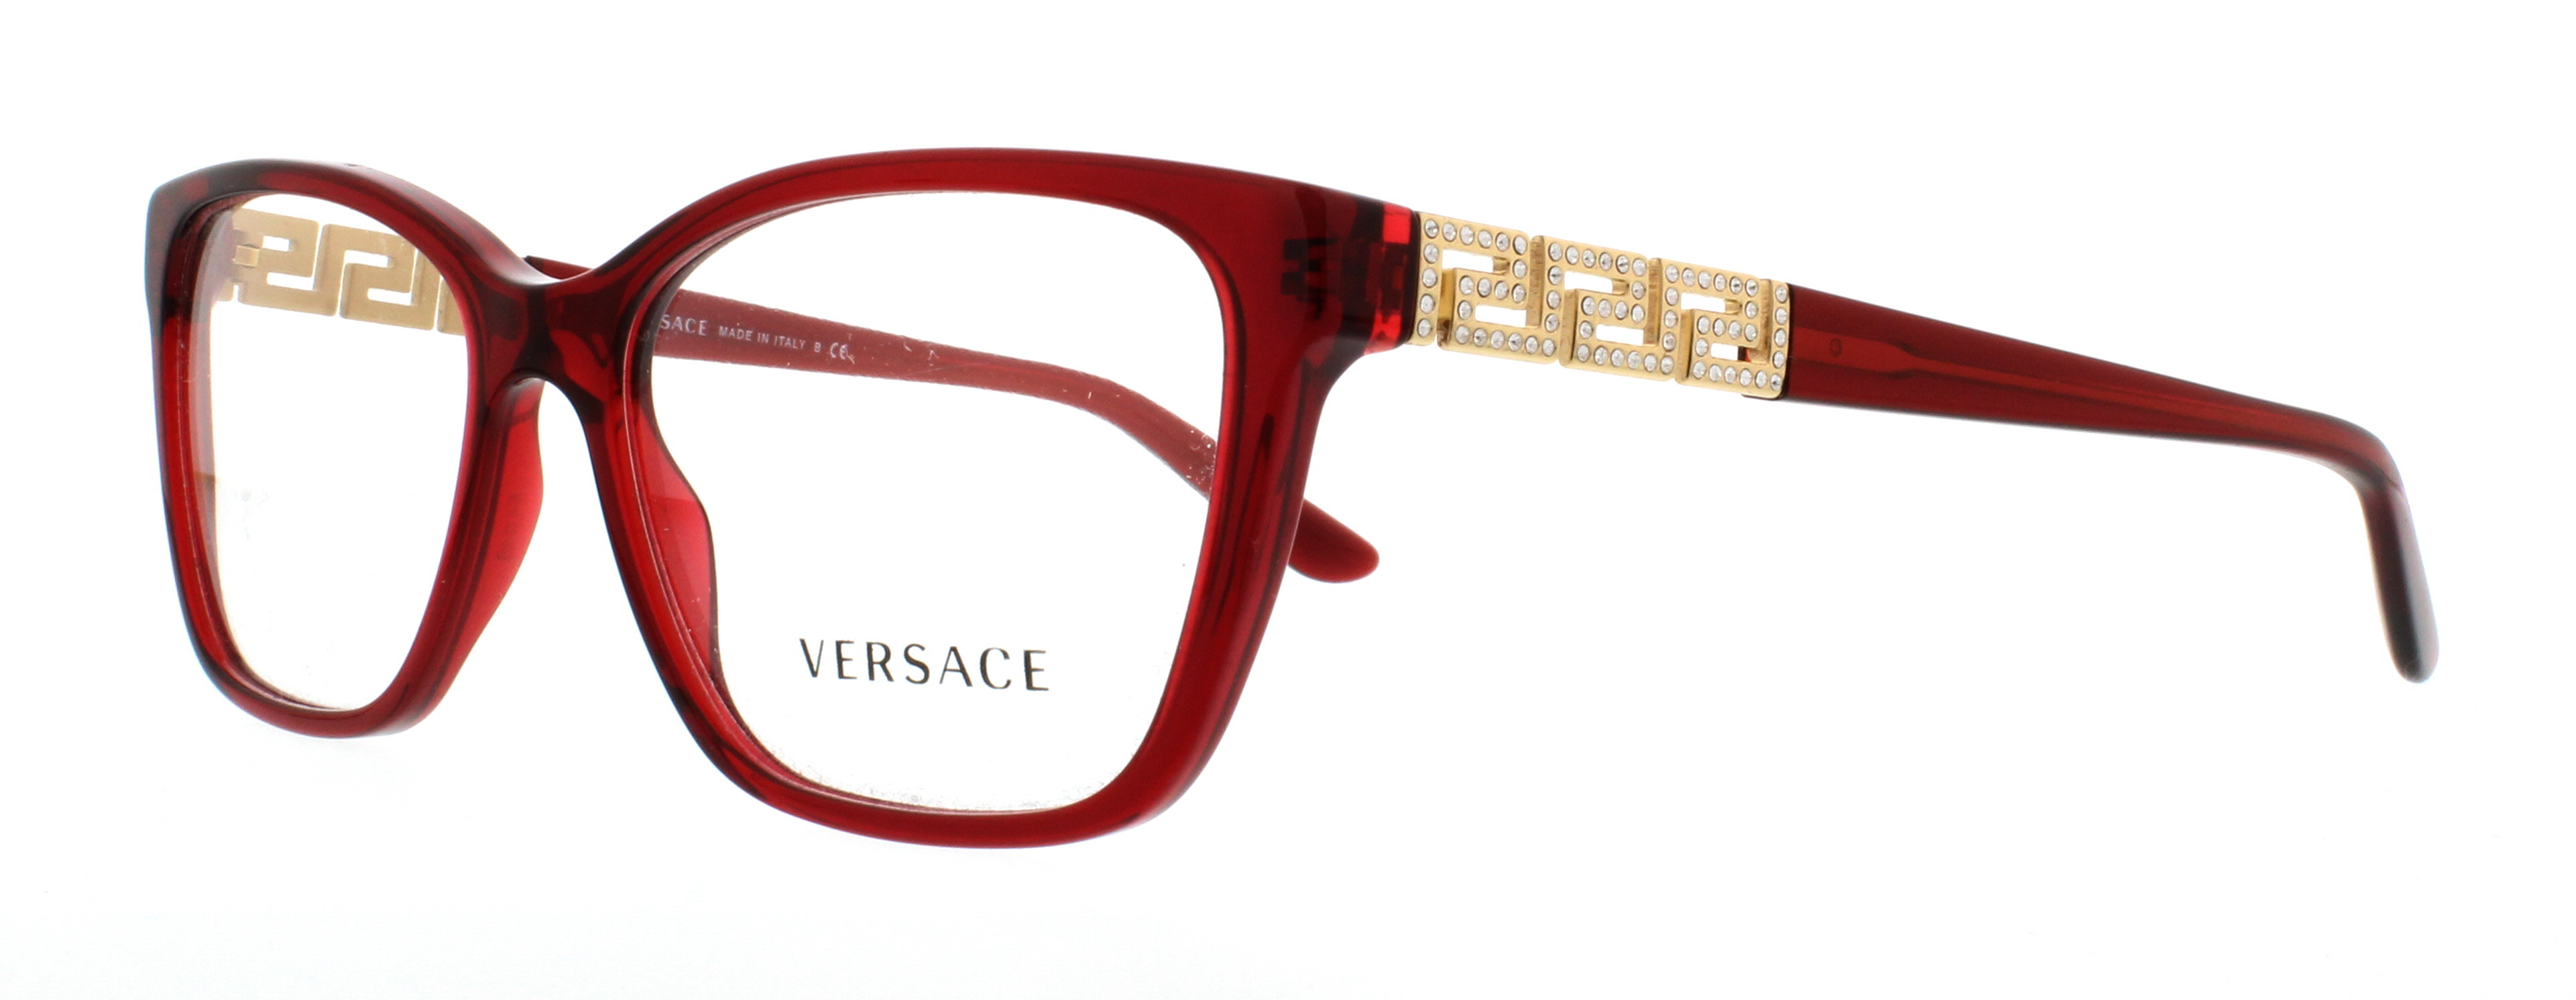 d401ddcaac19 VERSACE Eyeglasses VE 3192B 388 Transparent Red 54MM - Walmart.com